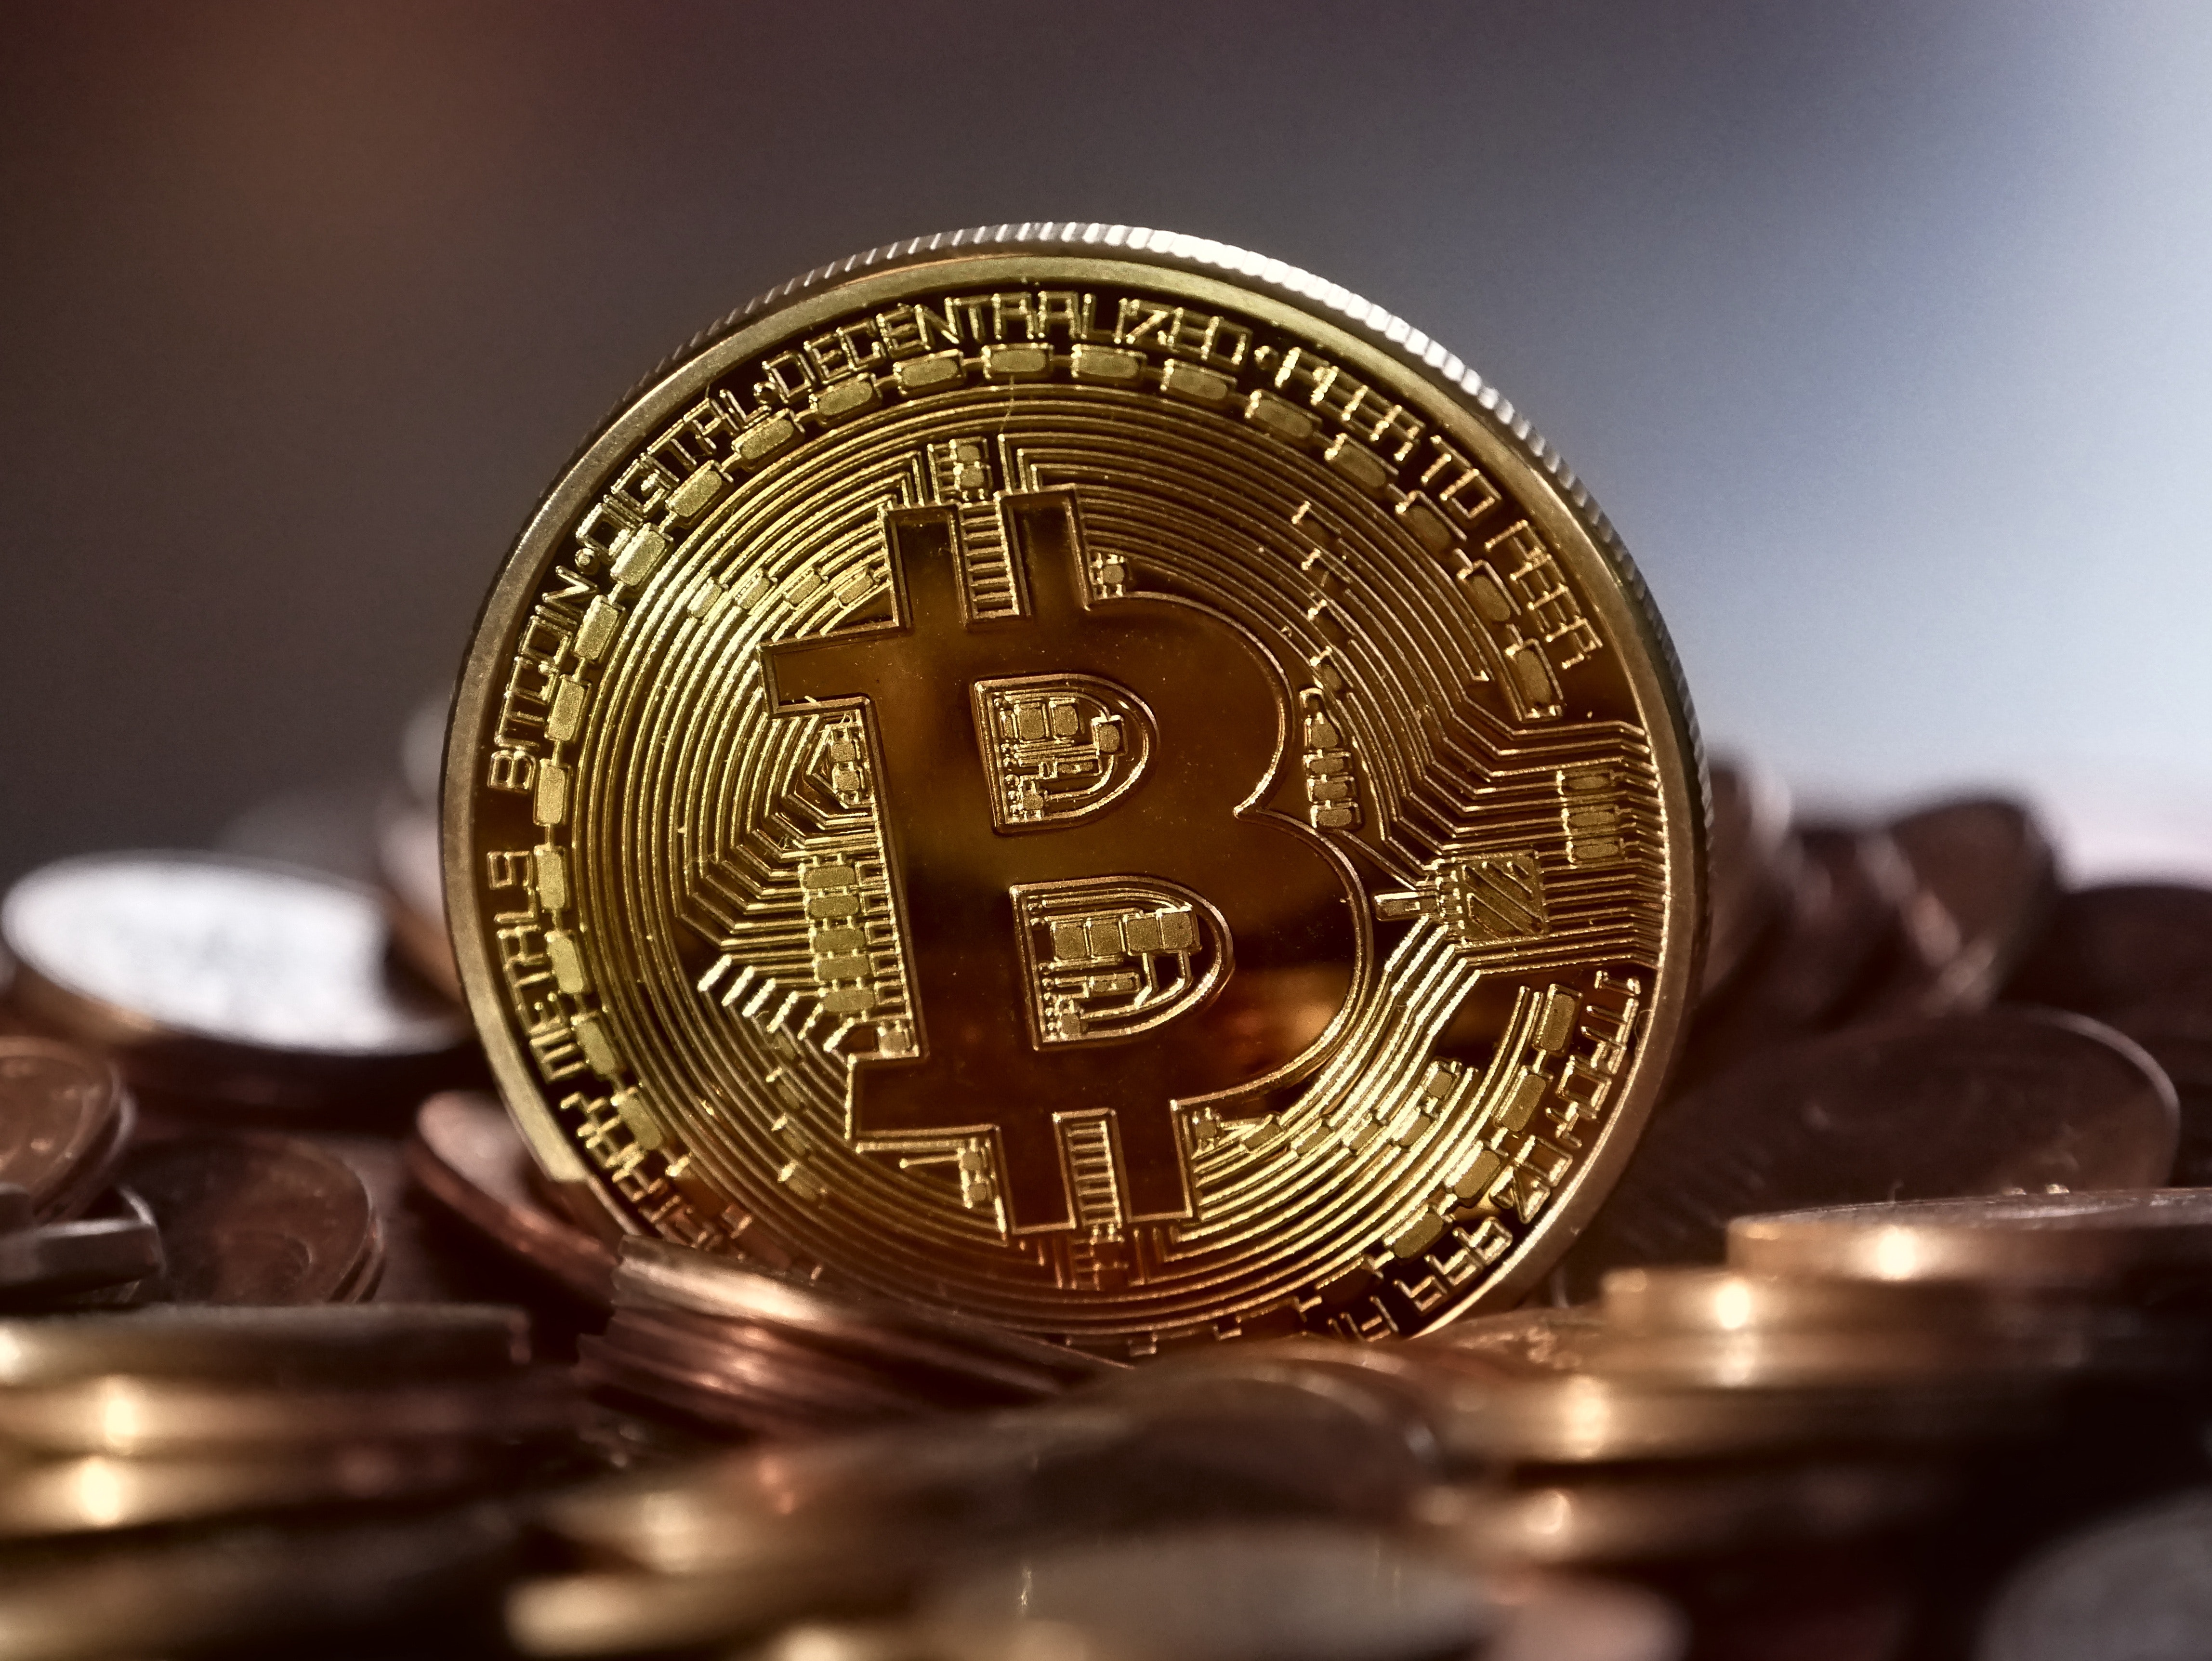 Find answers to recurring questions and myths about Bitcoin.